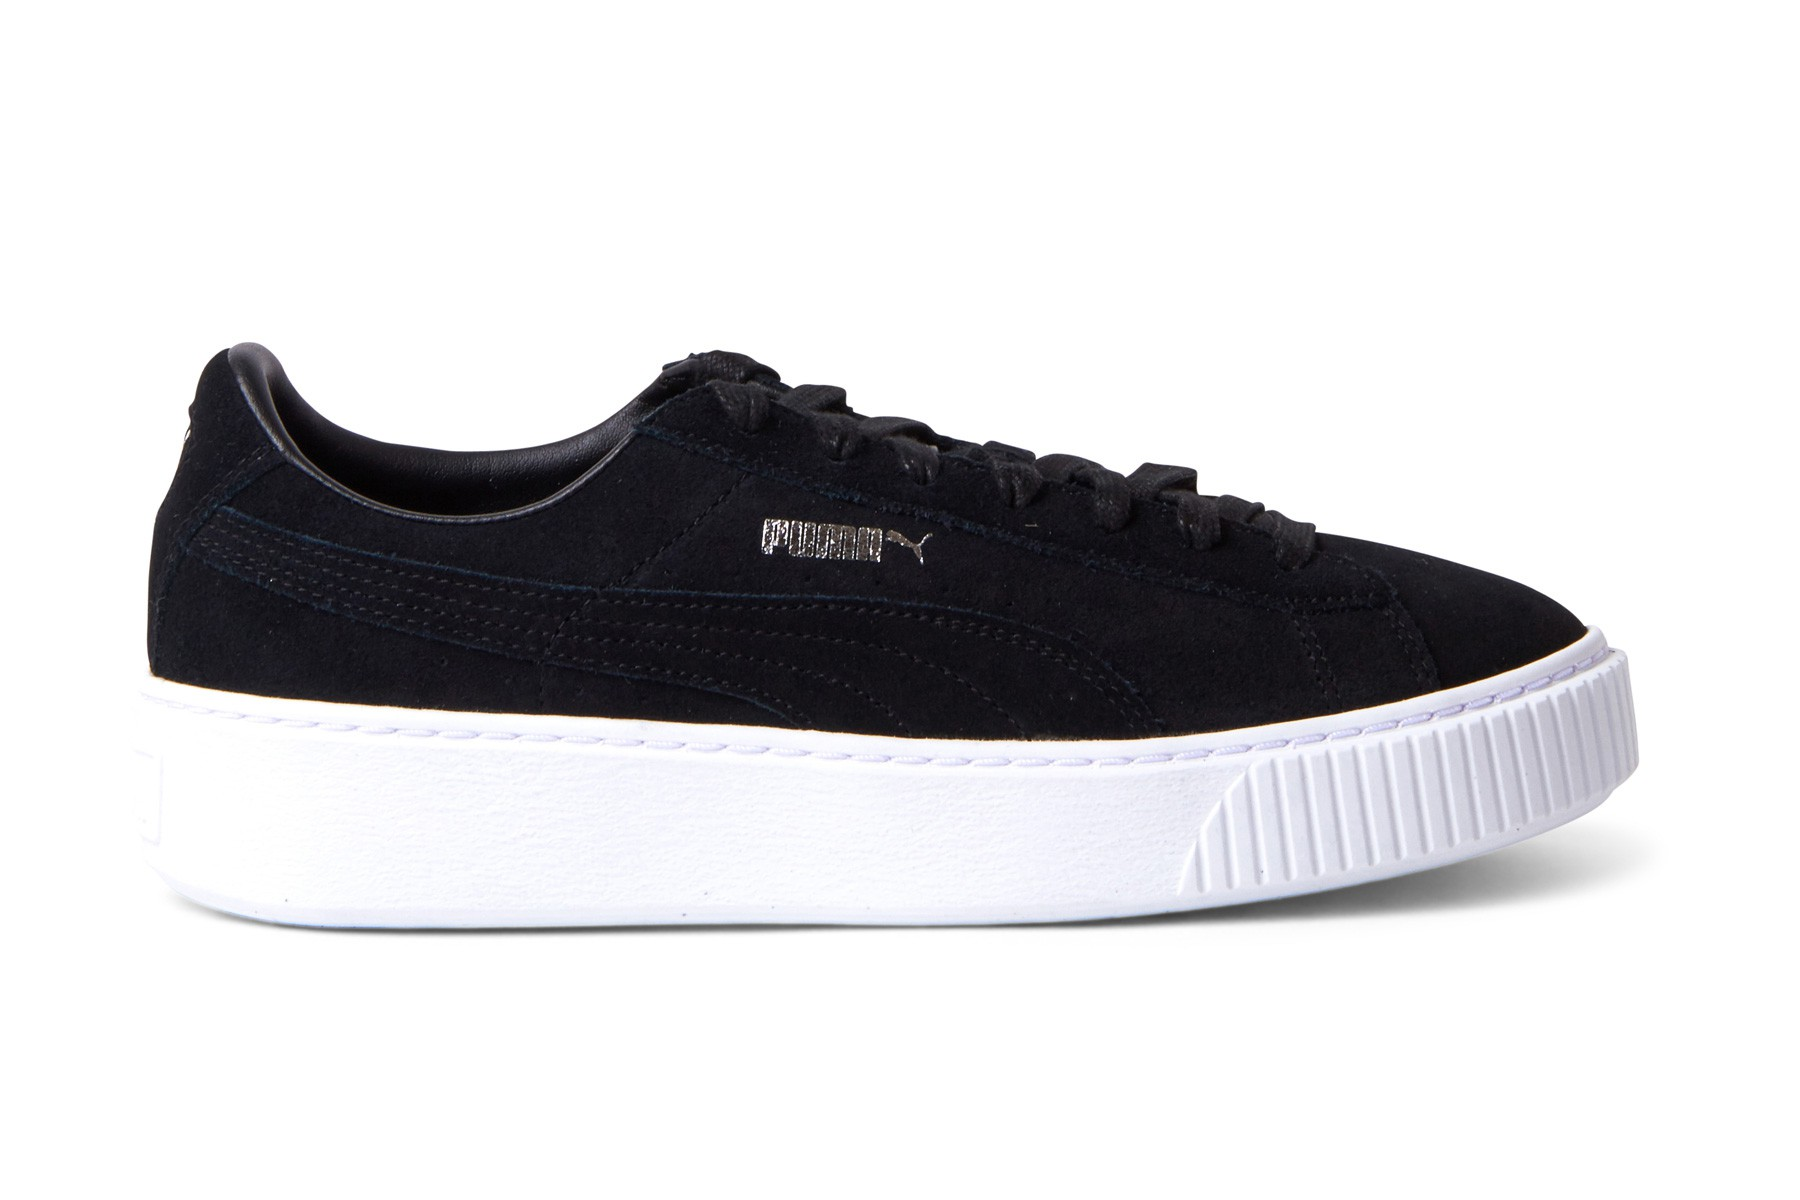 Women's Puma Black Suede Platform Economical, stylish, and eye-catching shoes